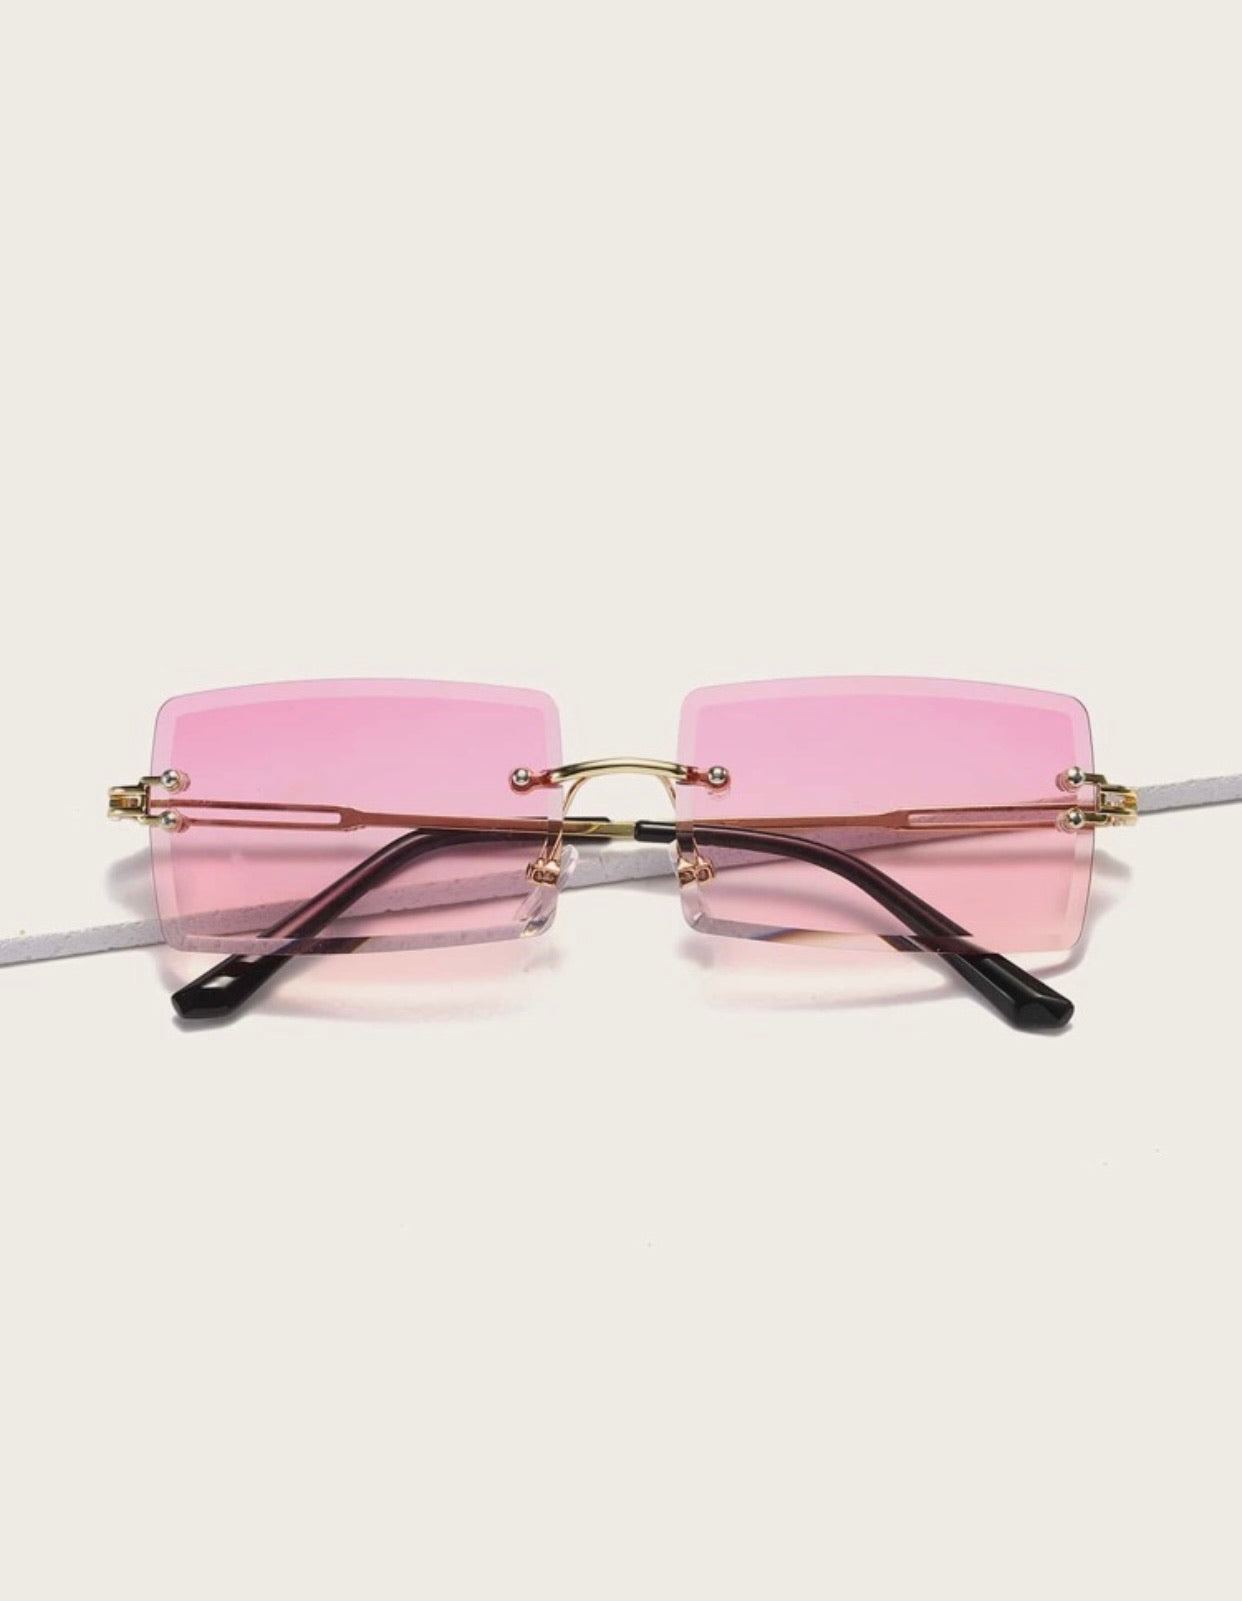 Cartier Me Shades - Pink